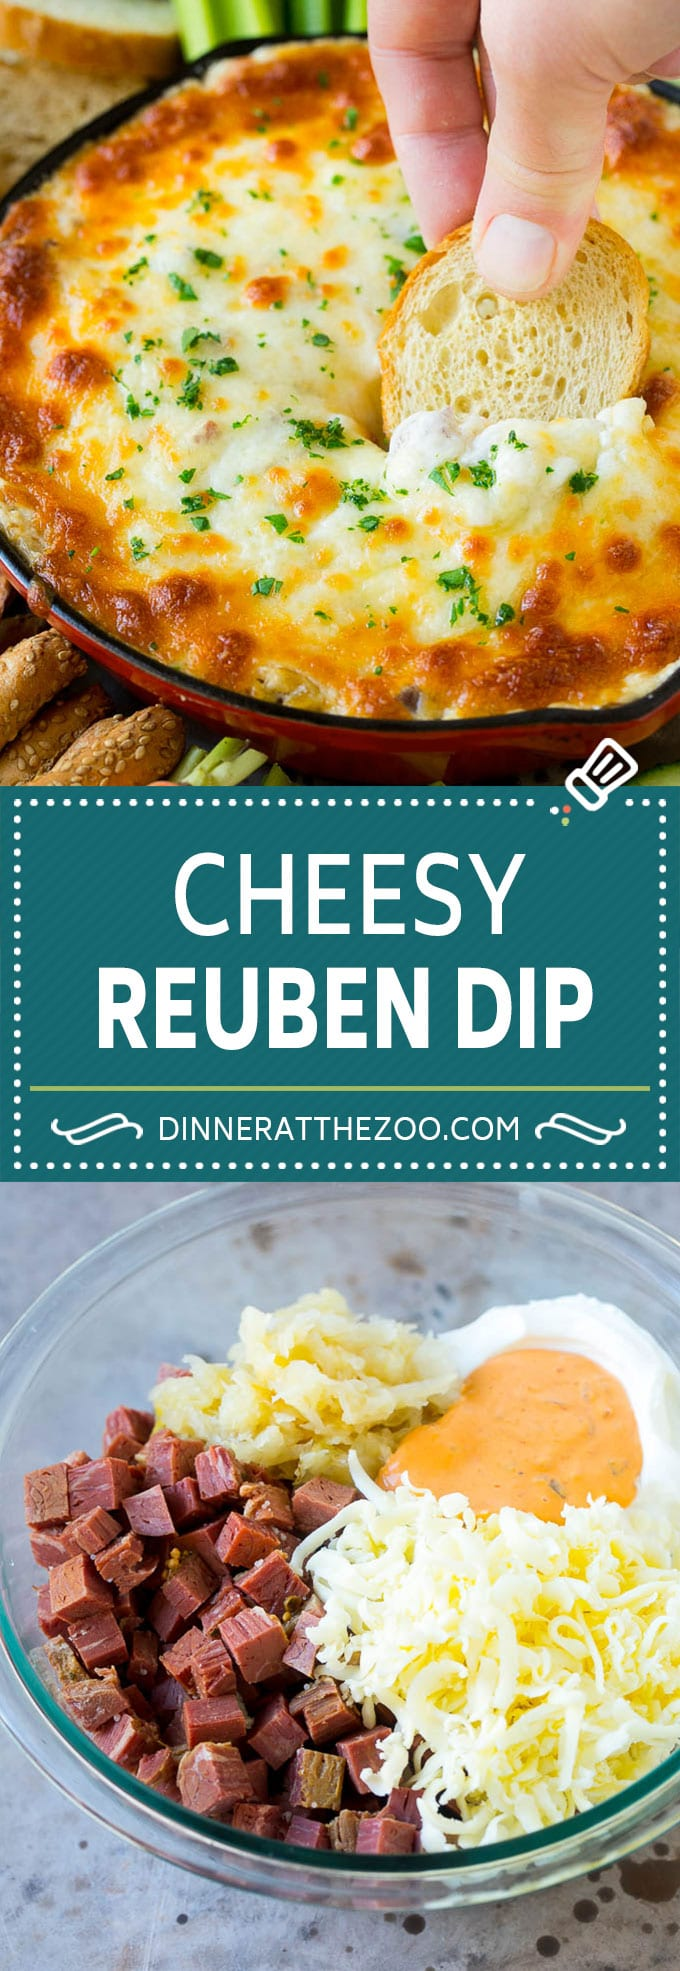 Reuben Dip Recipe | Corned Beef Dip | Cheese Dip #dip #cheese #cornedbeef #appetizer #lowcarb #keto #dinneratthezoo